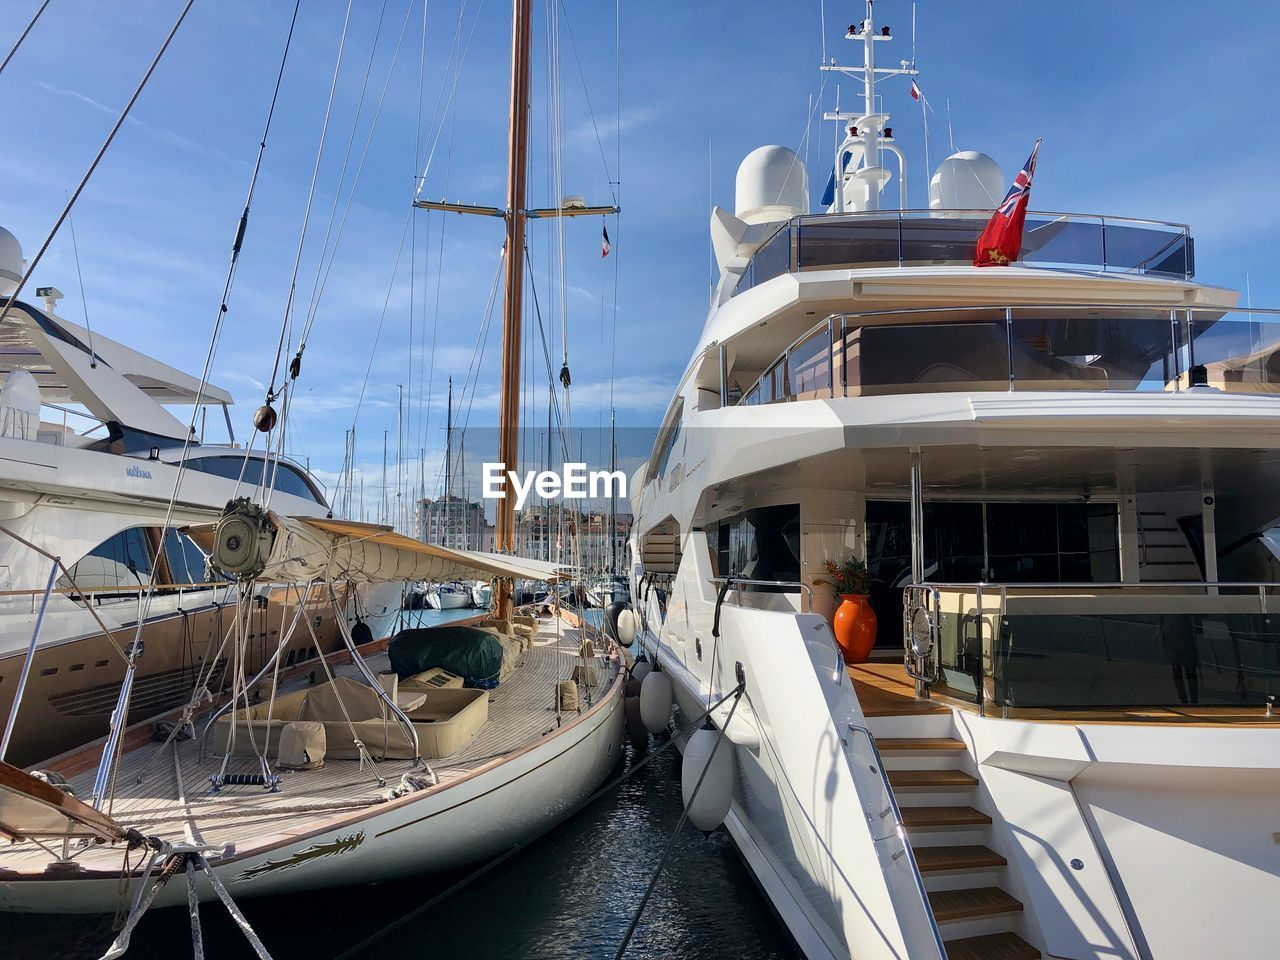 nautical vessel, mode of transportation, transportation, water, moored, sky, sea, sailboat, nature, day, mast, pole, ship, travel, no people, sailing, harbor, architecture, rope, outdoors, luxury, yacht, cruise ship